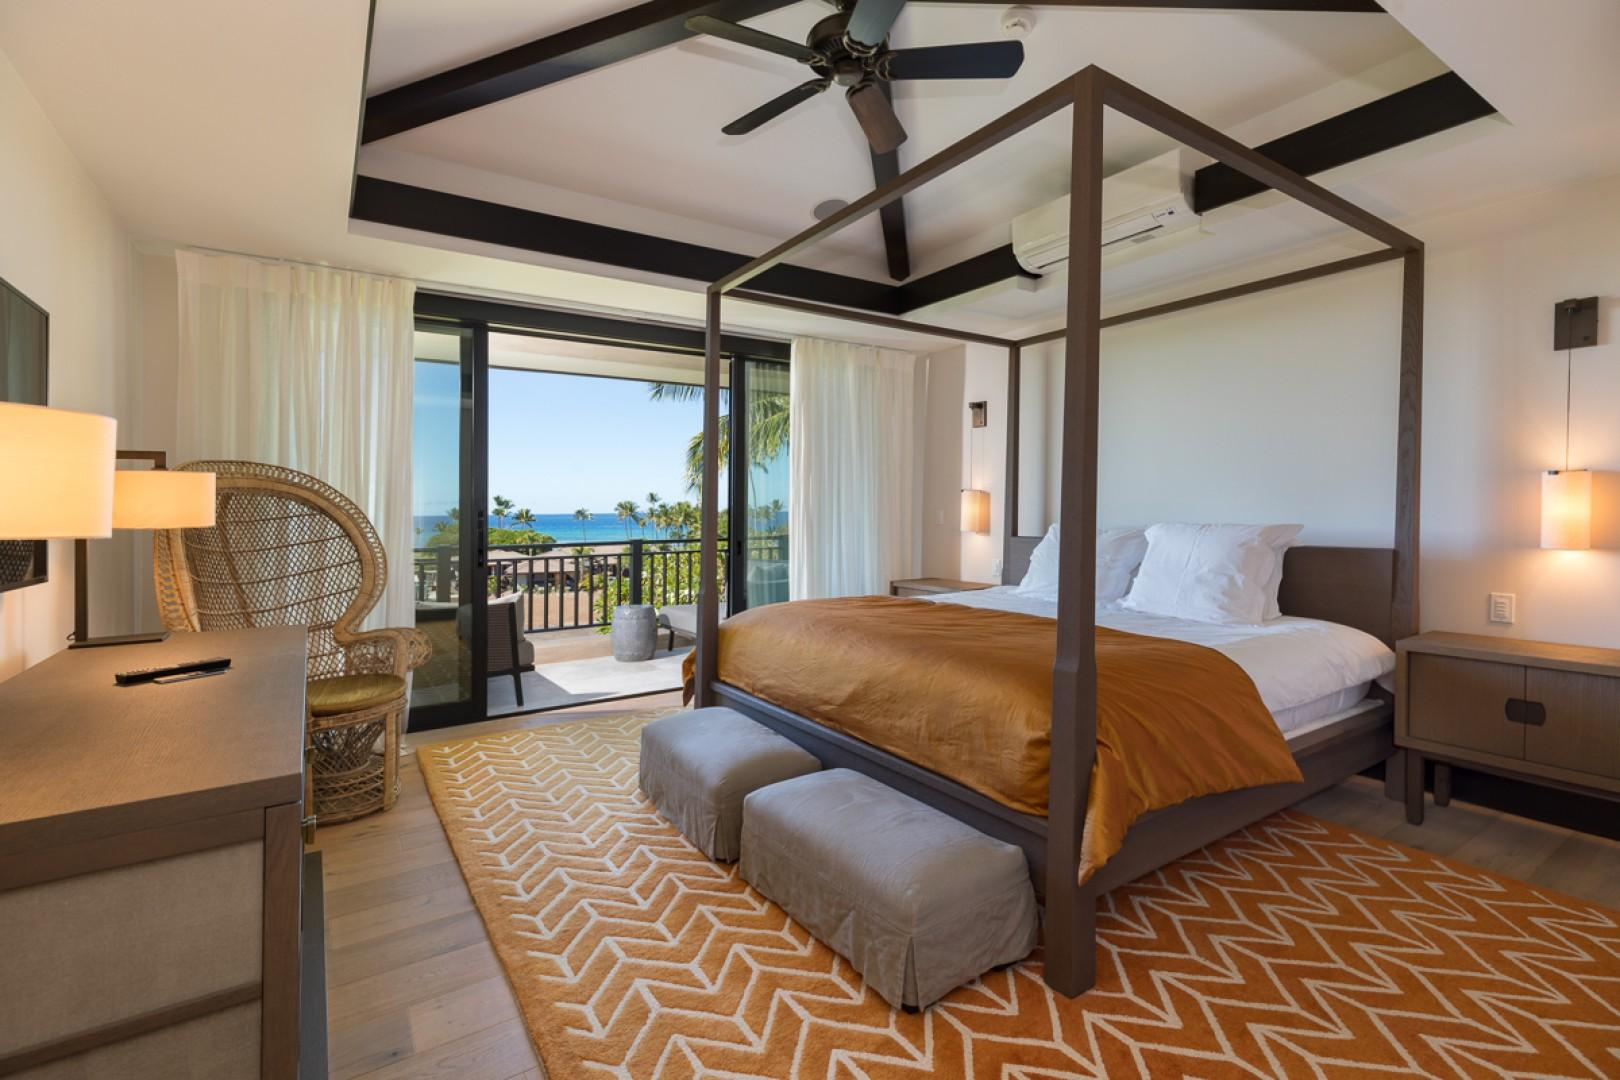 Guests will appreciate extras like four-poster beds and direct lanai access